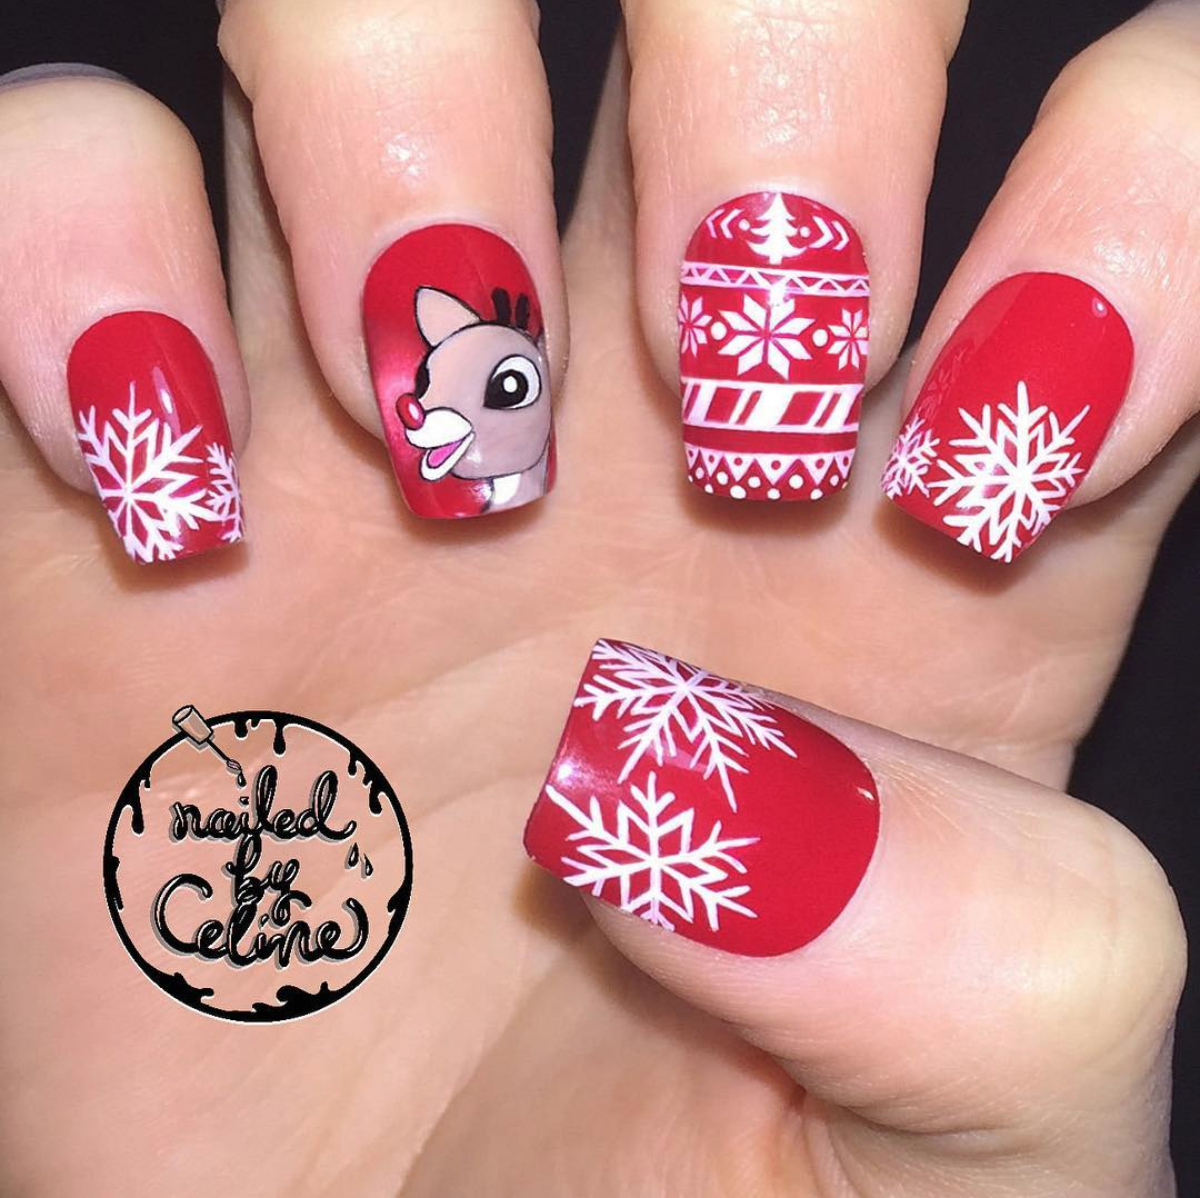 These Nail Art Designs Will Express Your Holiday Cheer In Style